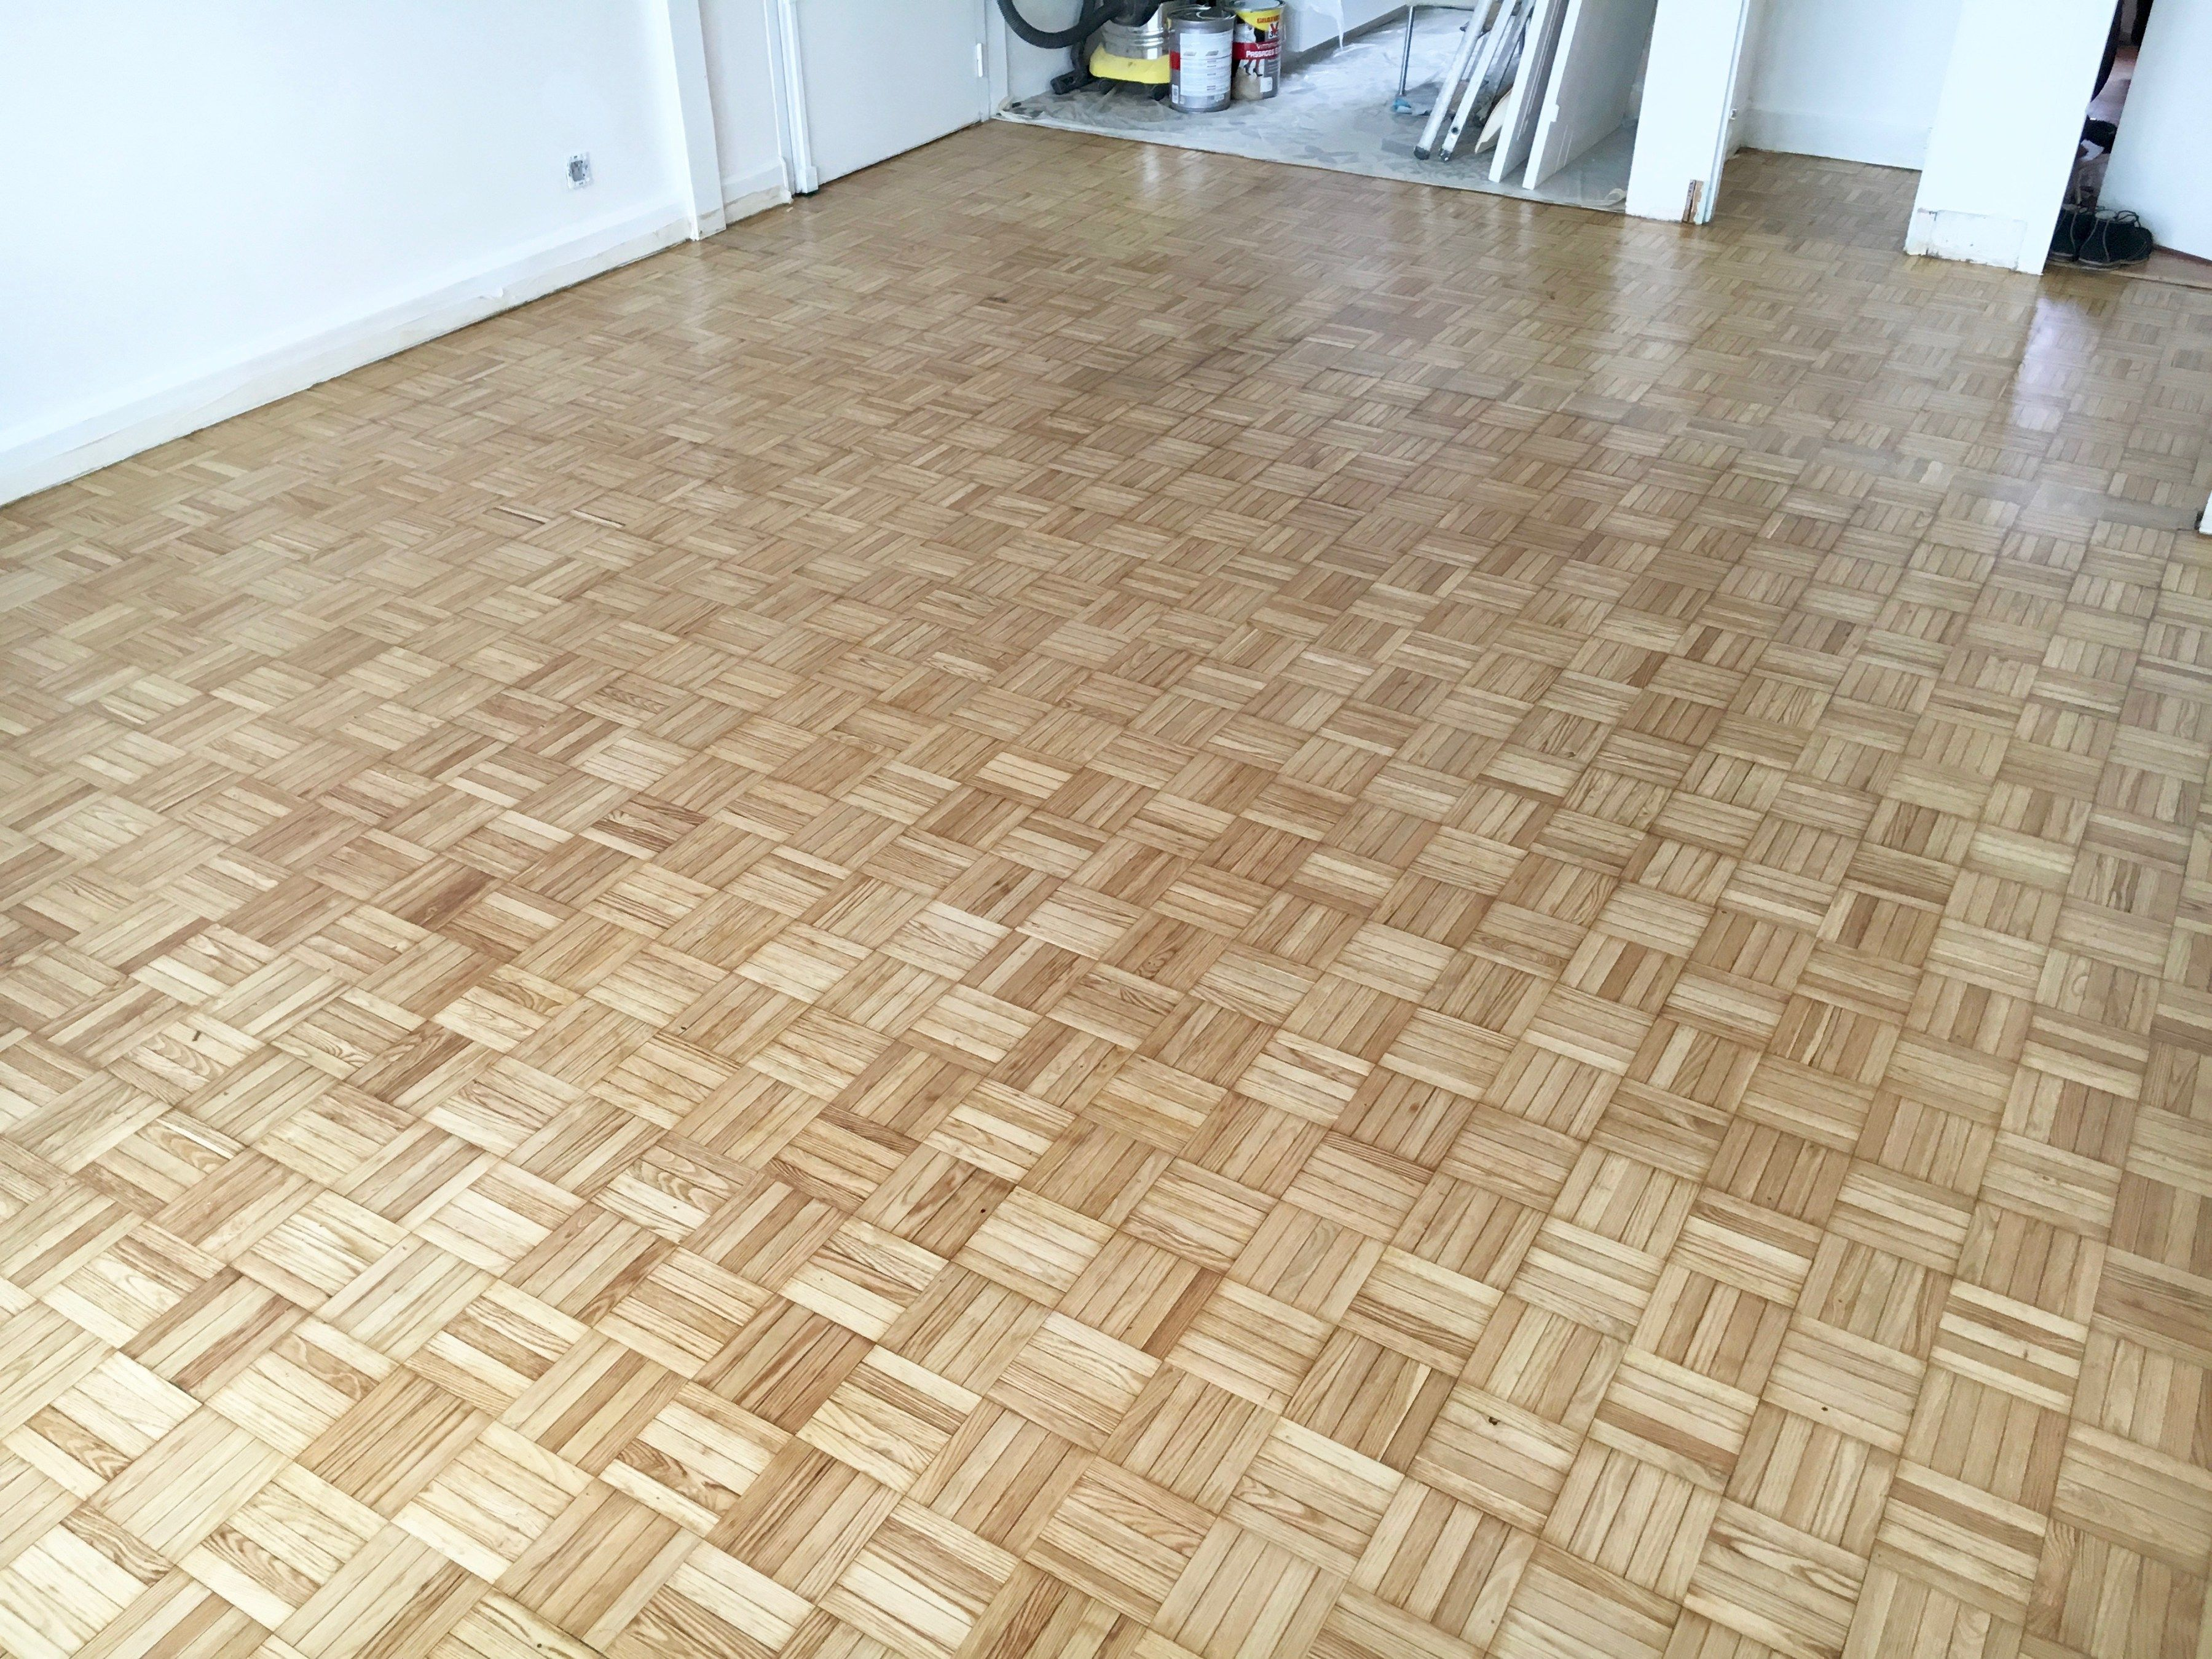 The Results After Renovating The 5 Finger Parquet Floor Floors In